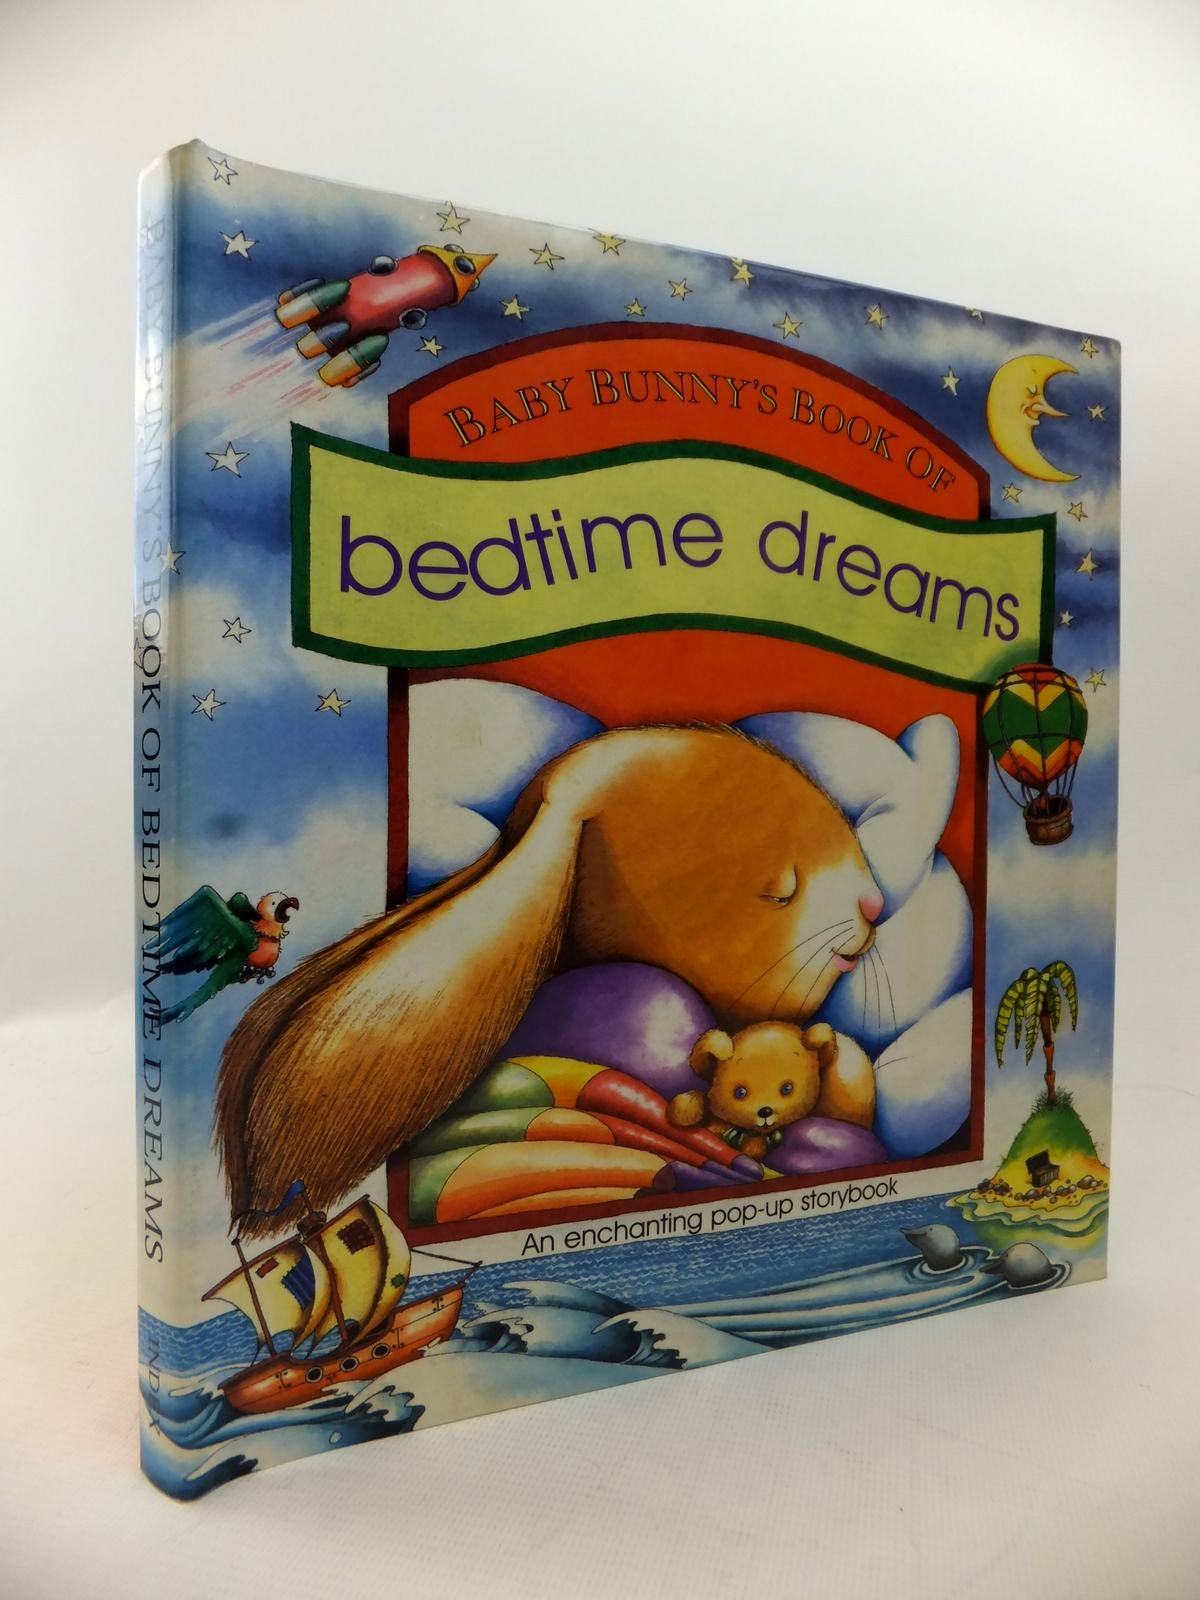 Photo of BABY BUNNY'S BOOK OF BEDTIME DREAMS written by Randall, Ronne illustrated by Mcmullen, Nigel published by Index (STOCK CODE: 1813668)  for sale by Stella & Rose's Books